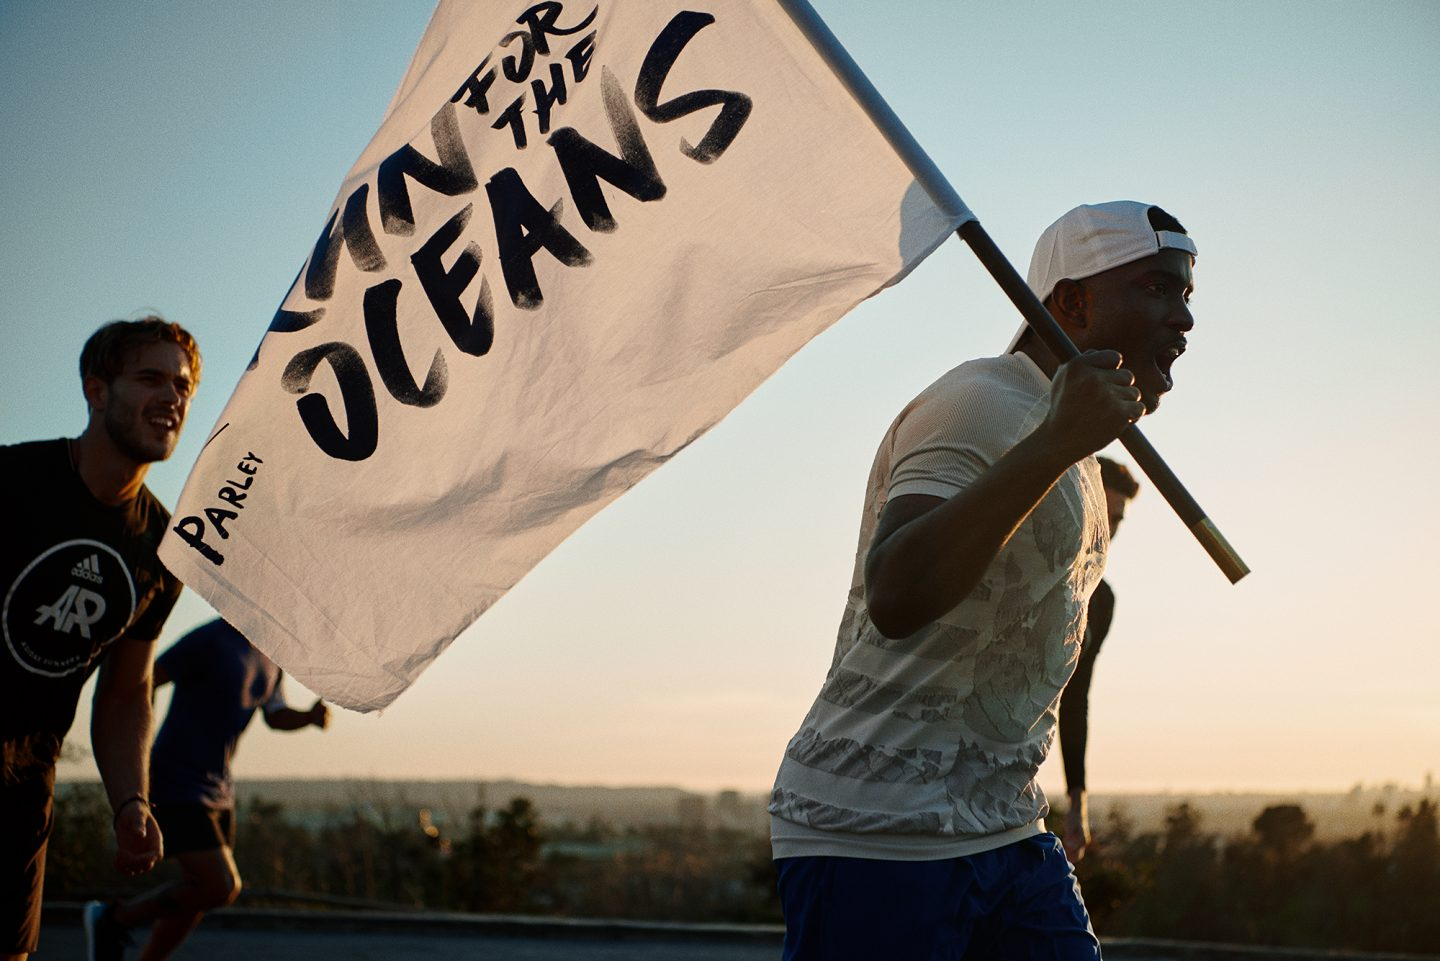 A man runs carrying a flag that says Run for the Oceans. Sustainable fashion, Gameplan A.